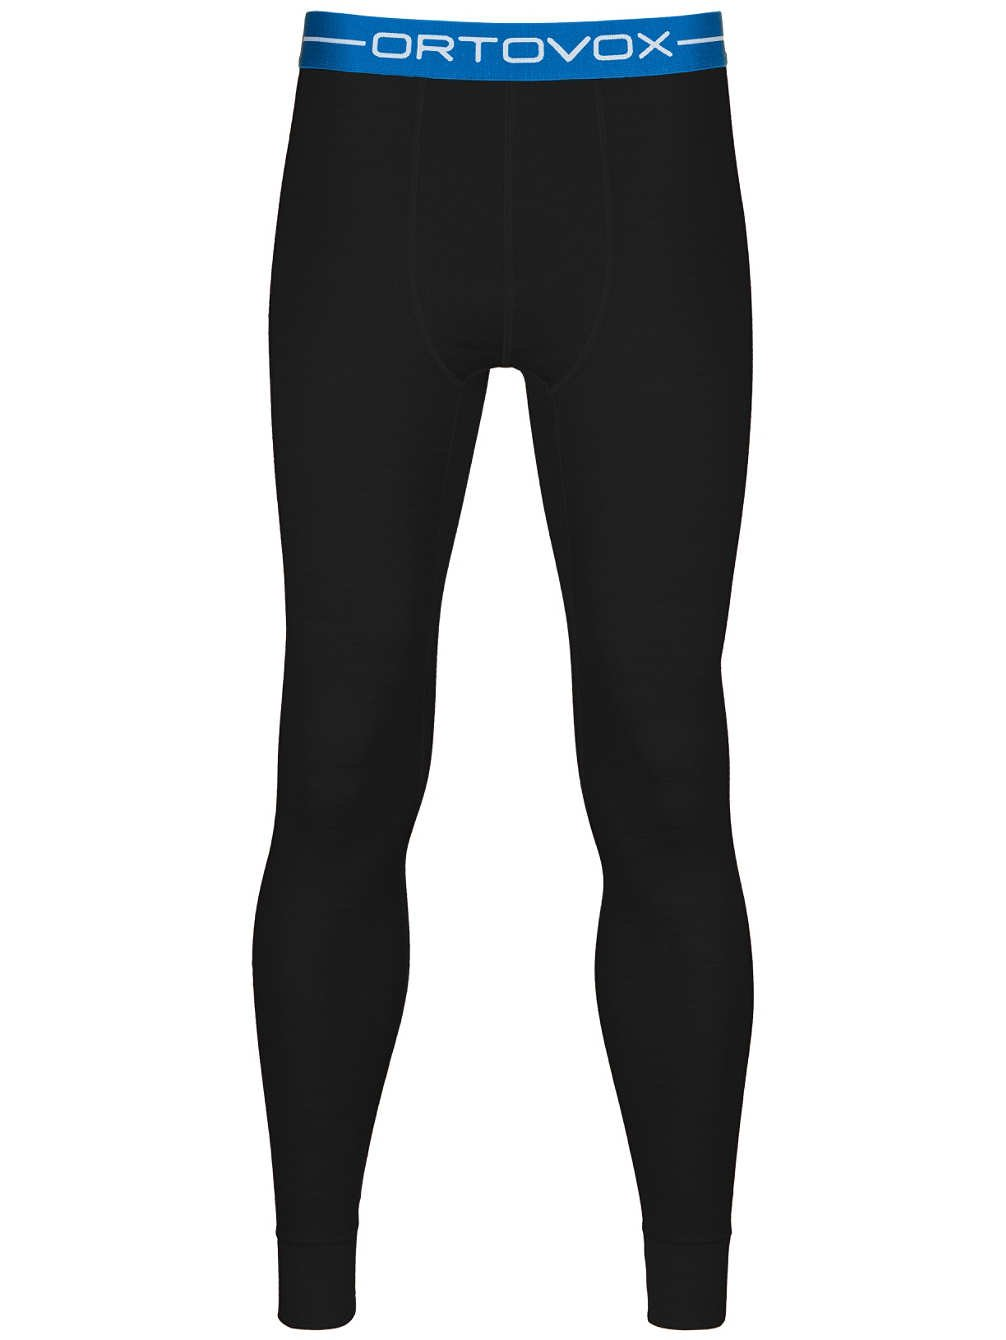 Ortovox Merino Supersoft Long Pant Herren kaufen